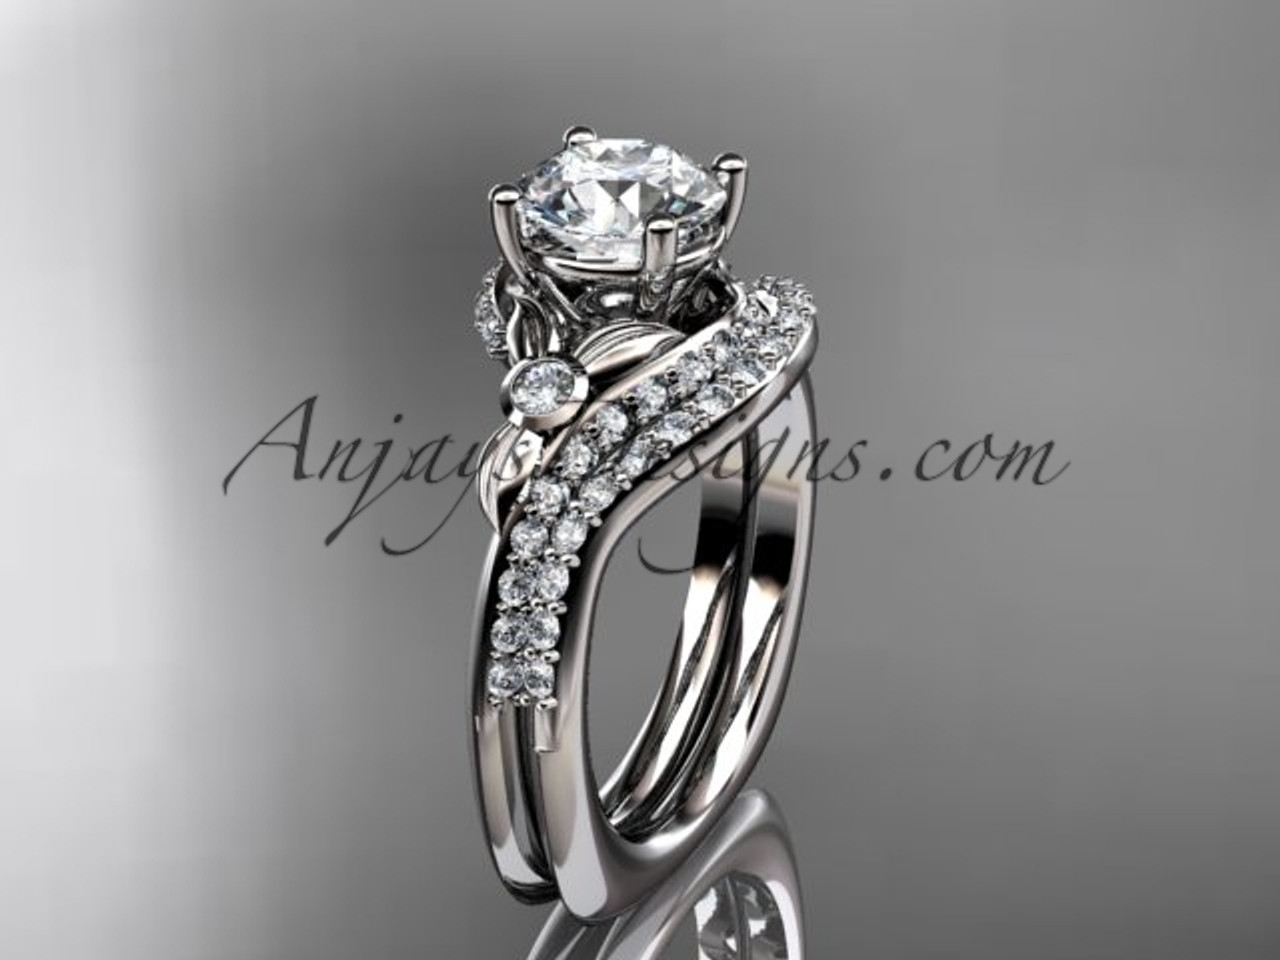 14kt white gold diamond leaf and vine engagement ring set with